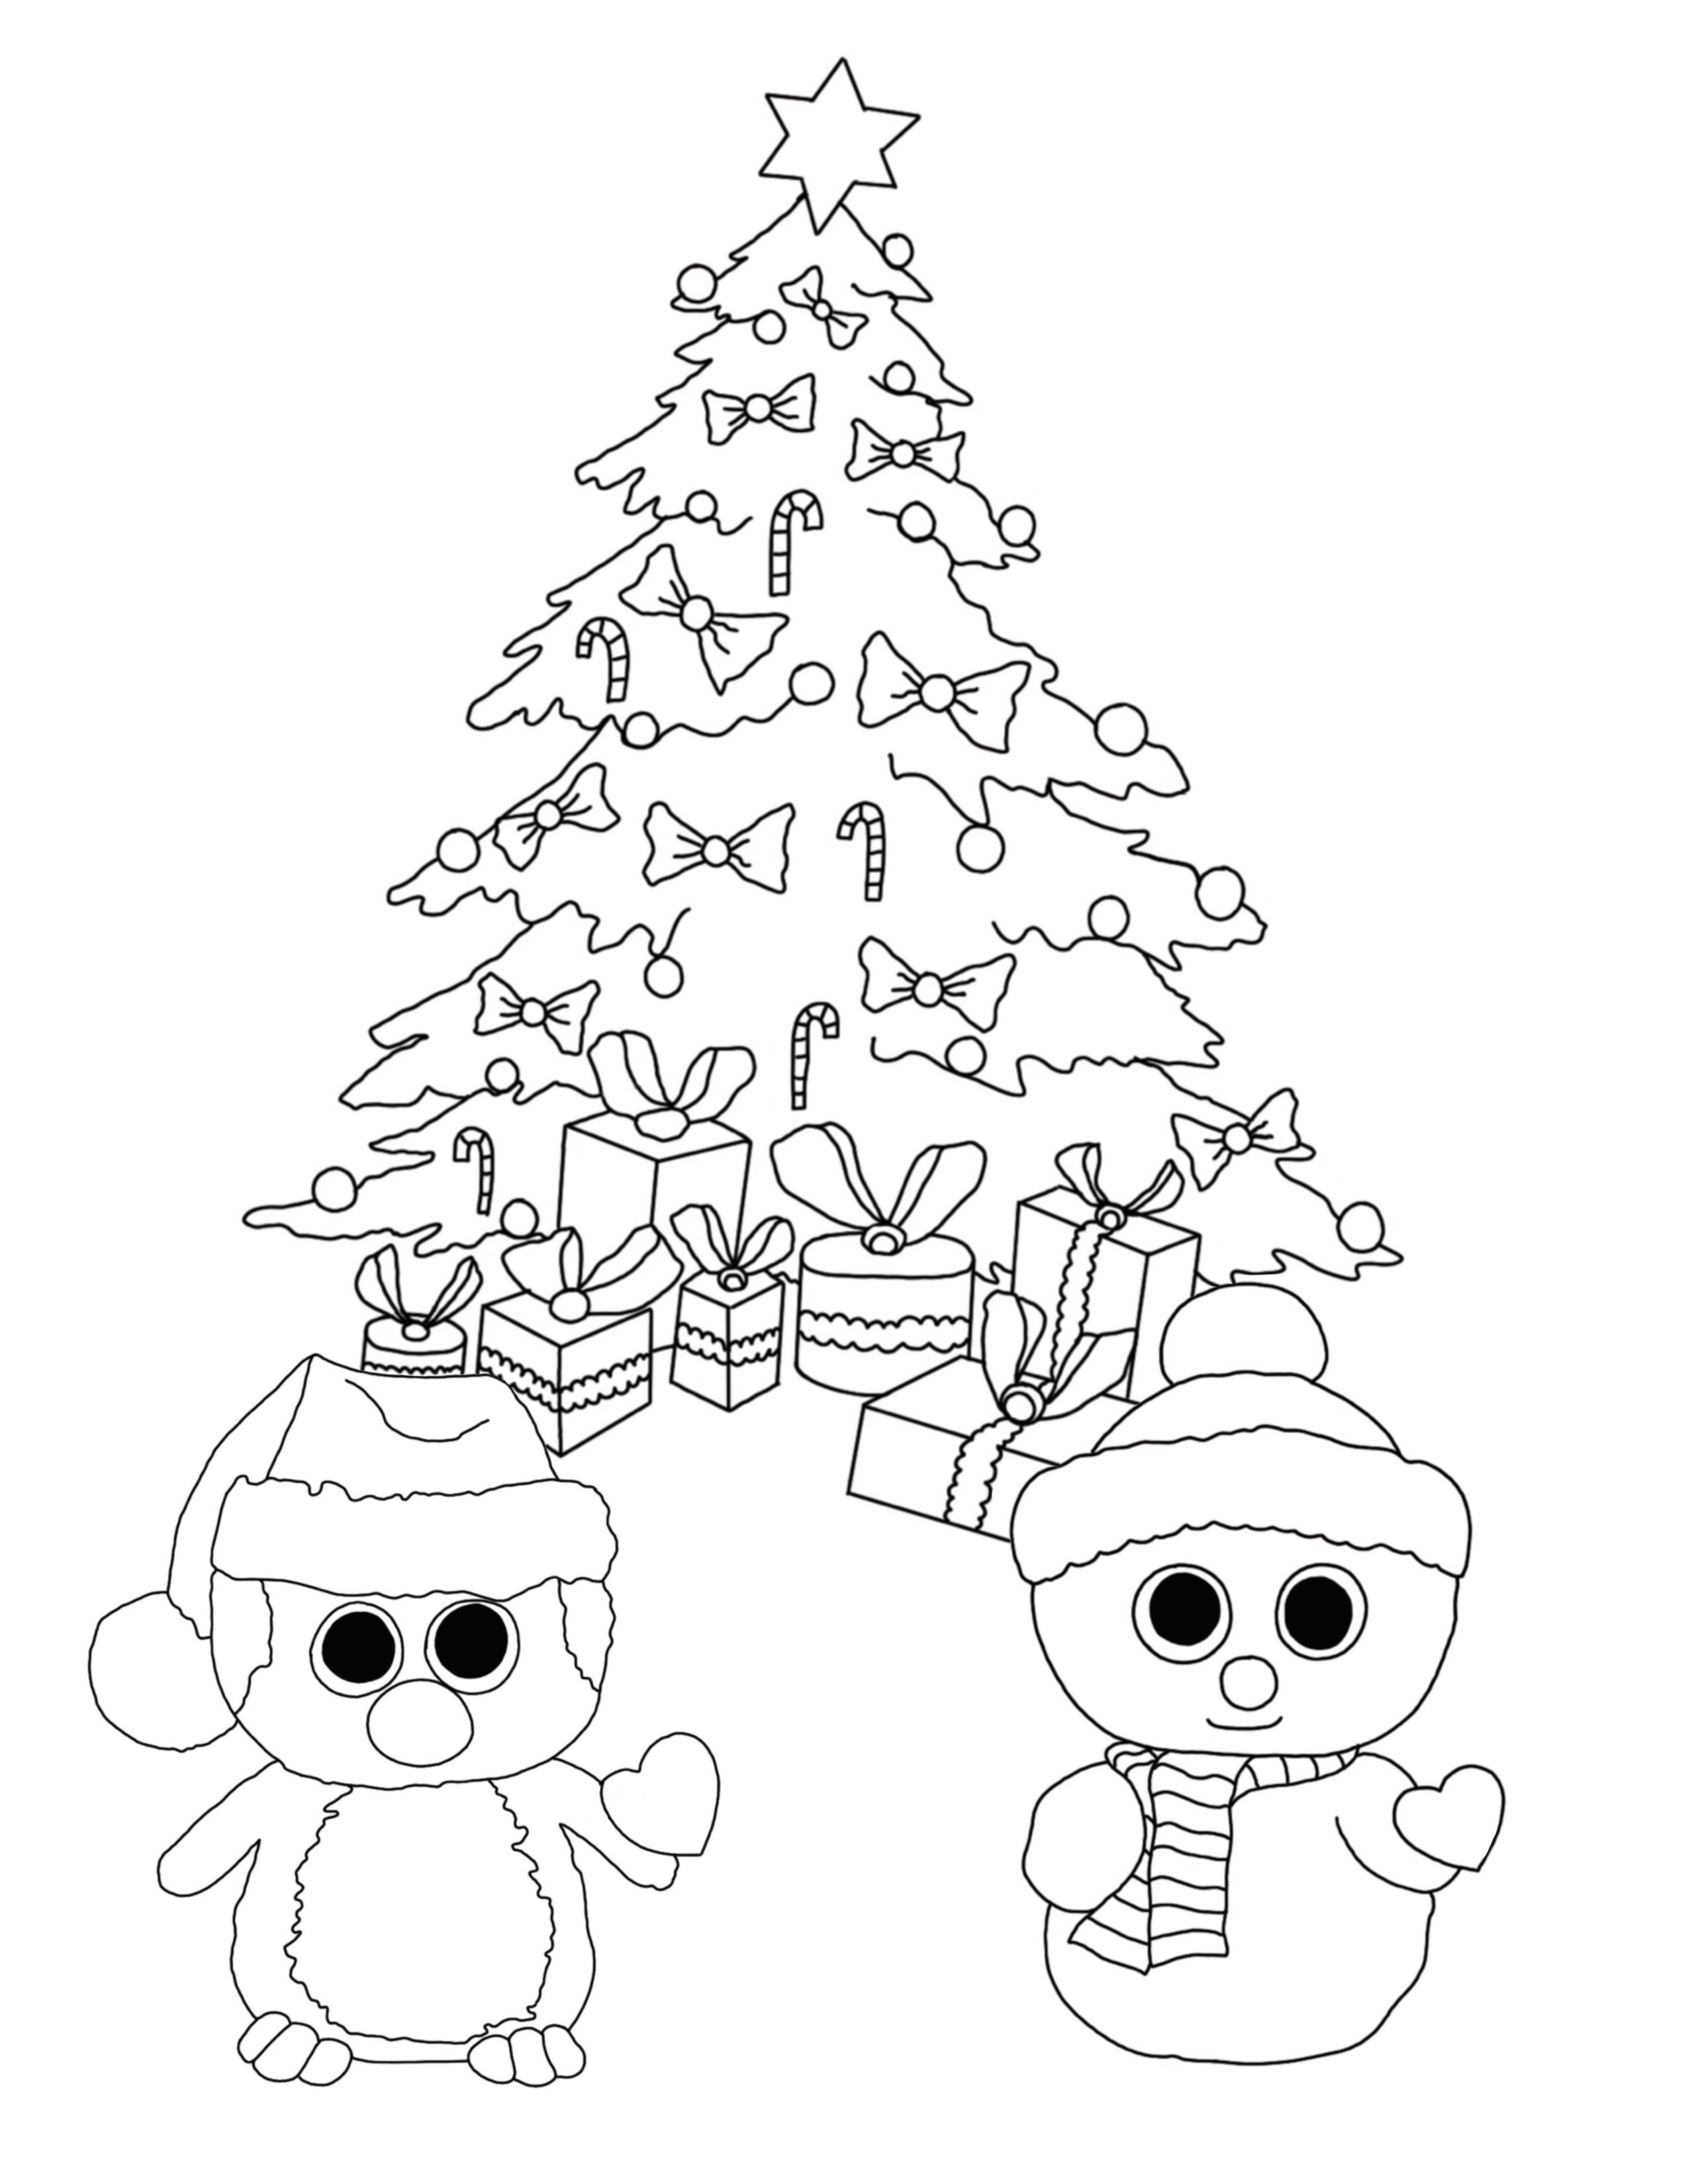 Free Beanie Boo Coloring Pages Download Print Cats Dogs And